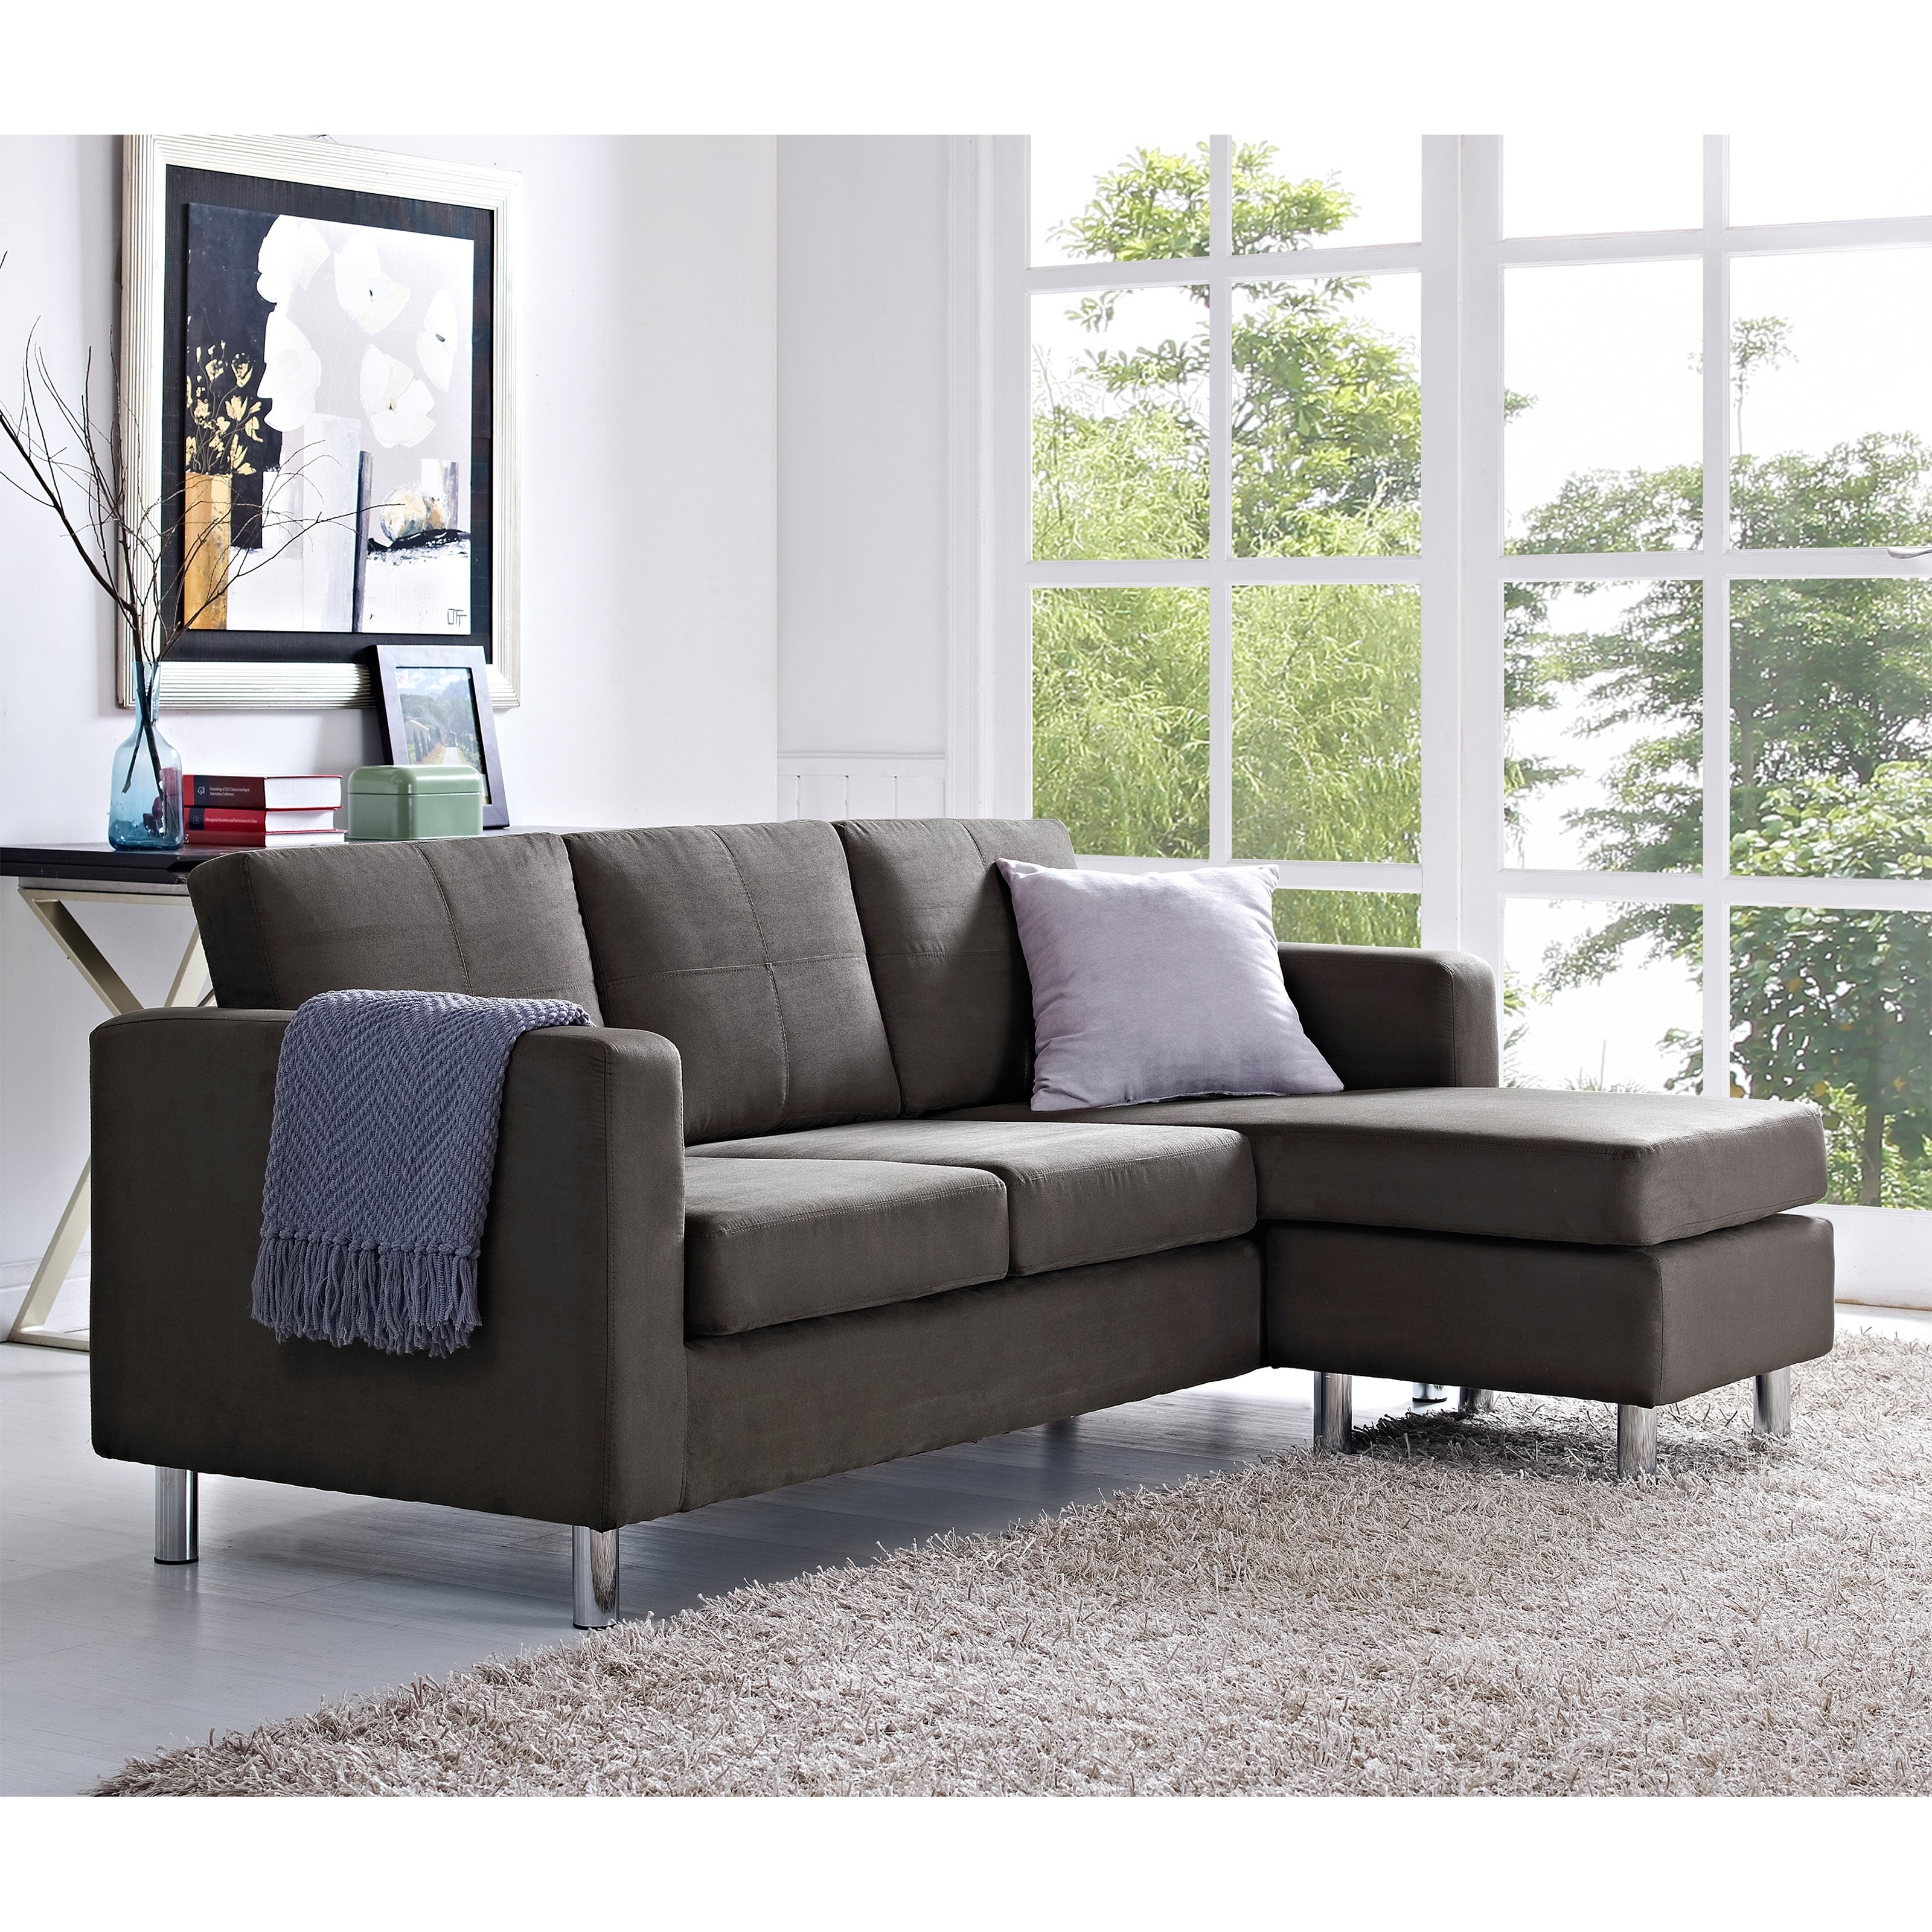 Tips On Buying And Placing A Sectional Sofa For Small Spaces with regard to Evansville In Sectional Sofas (Image 9 of 10)